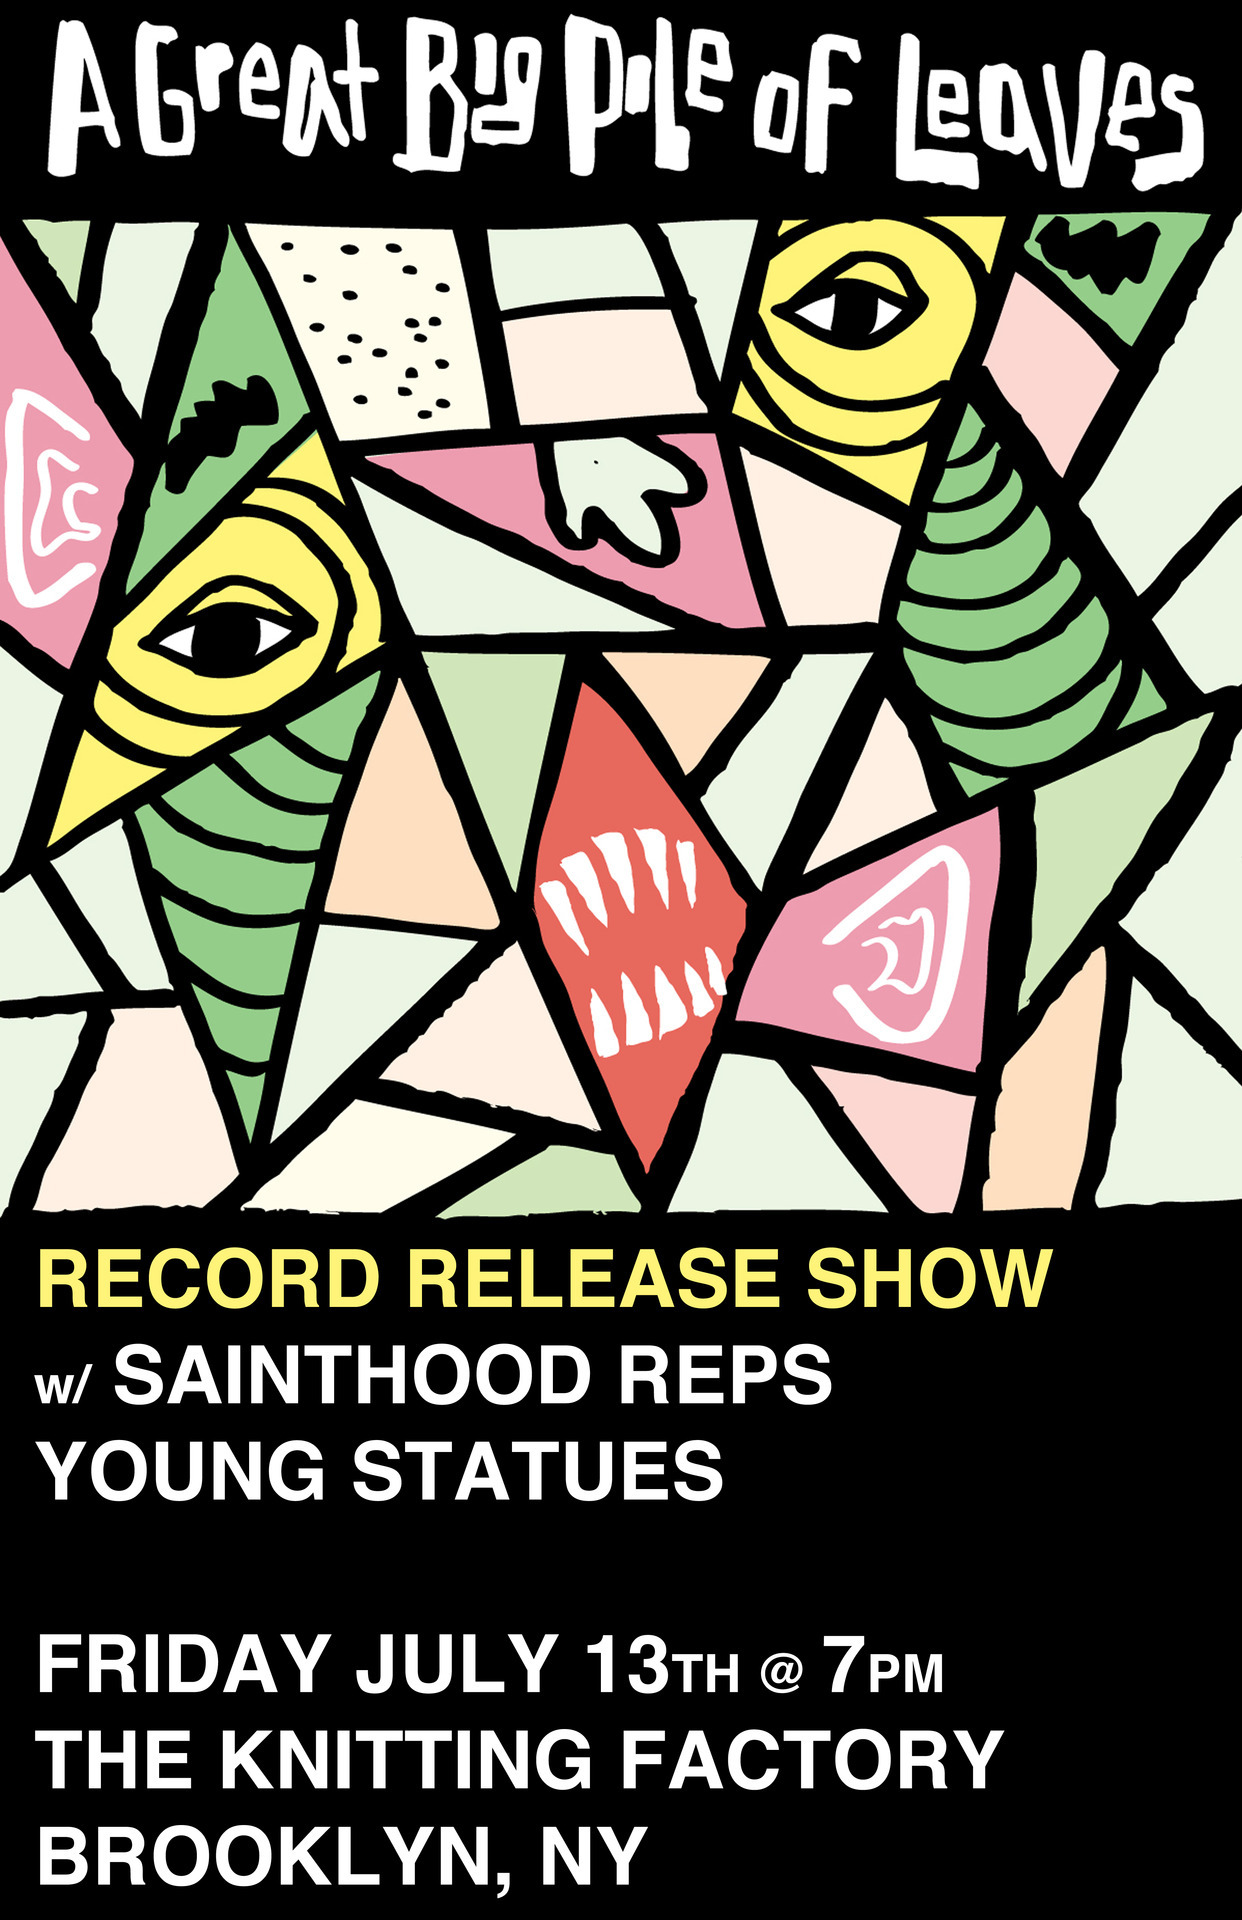 Tickets are now on sale for our record release show w/ Sainthood Reps and Young Statues! $10.00 advance and $12.00 at the door!CLICK HERE FOR TICKETSCLICK HERE FOR SHOW INFO